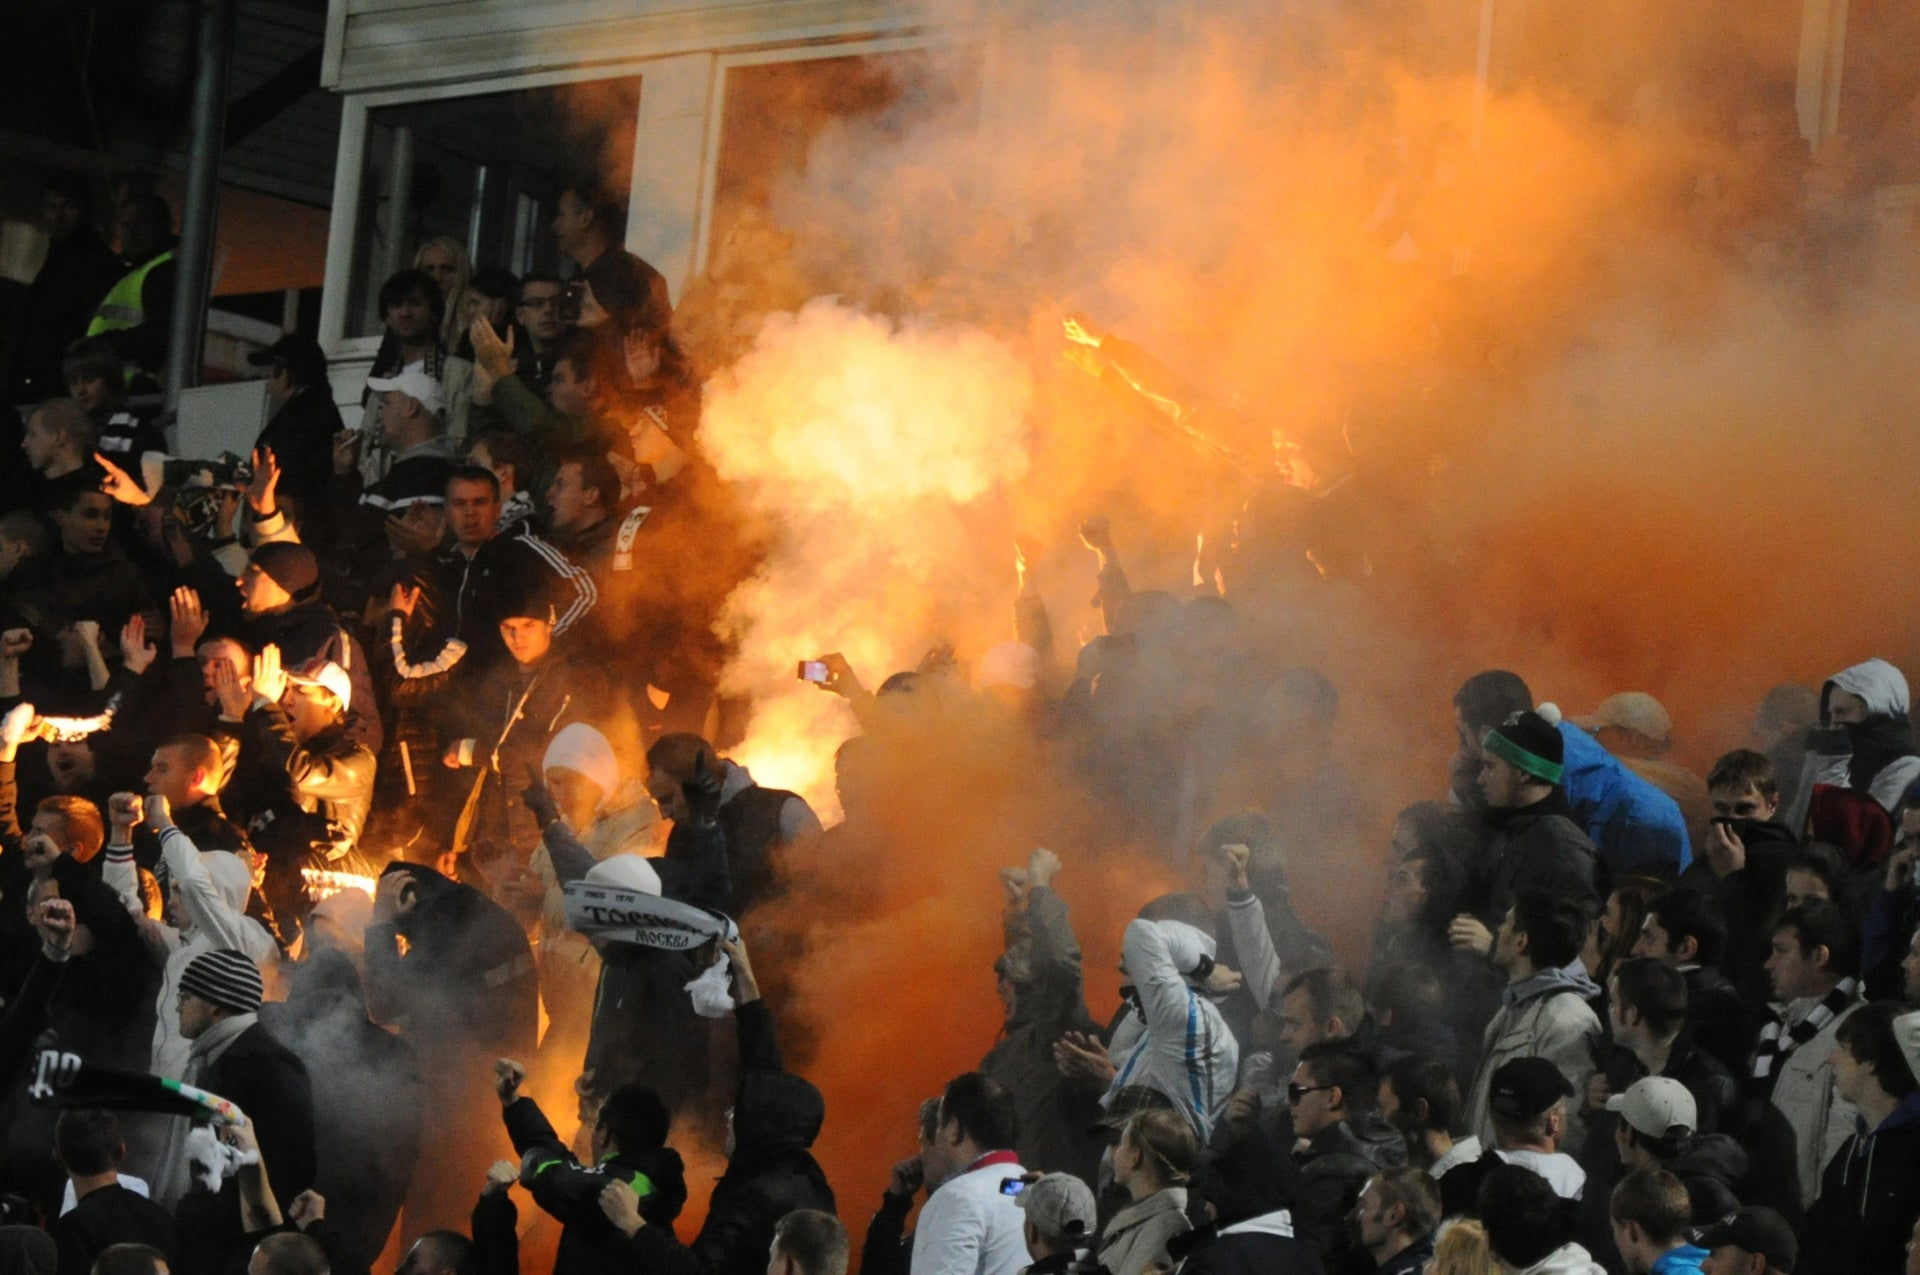 Russian soccer fans light flares during a fourth round Russia Cup match between Dinamo Moscow and Torpedo Moscow at the Eduard Streltsov Stadium in Moscow, on September 26, 2012.